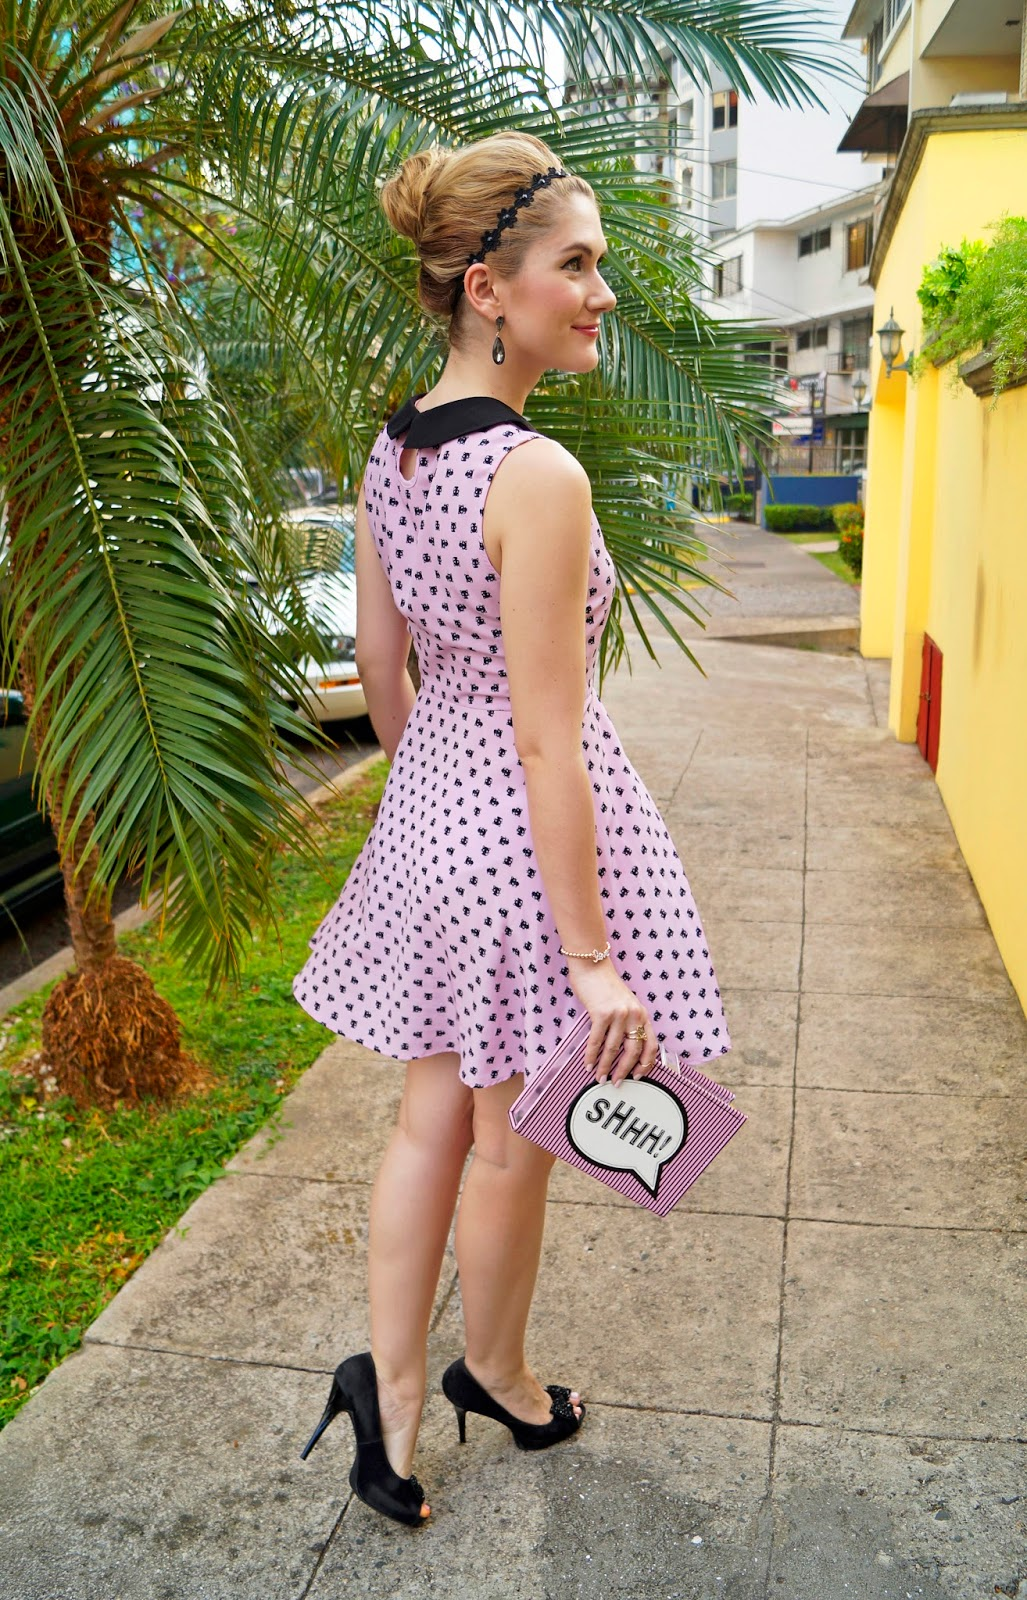 daily outfits blog, fashion blog, feminine outfit, pink dress outfit, forever 21 dress, asos clutch, book clutch, book clutch outfit, date outfit ideas